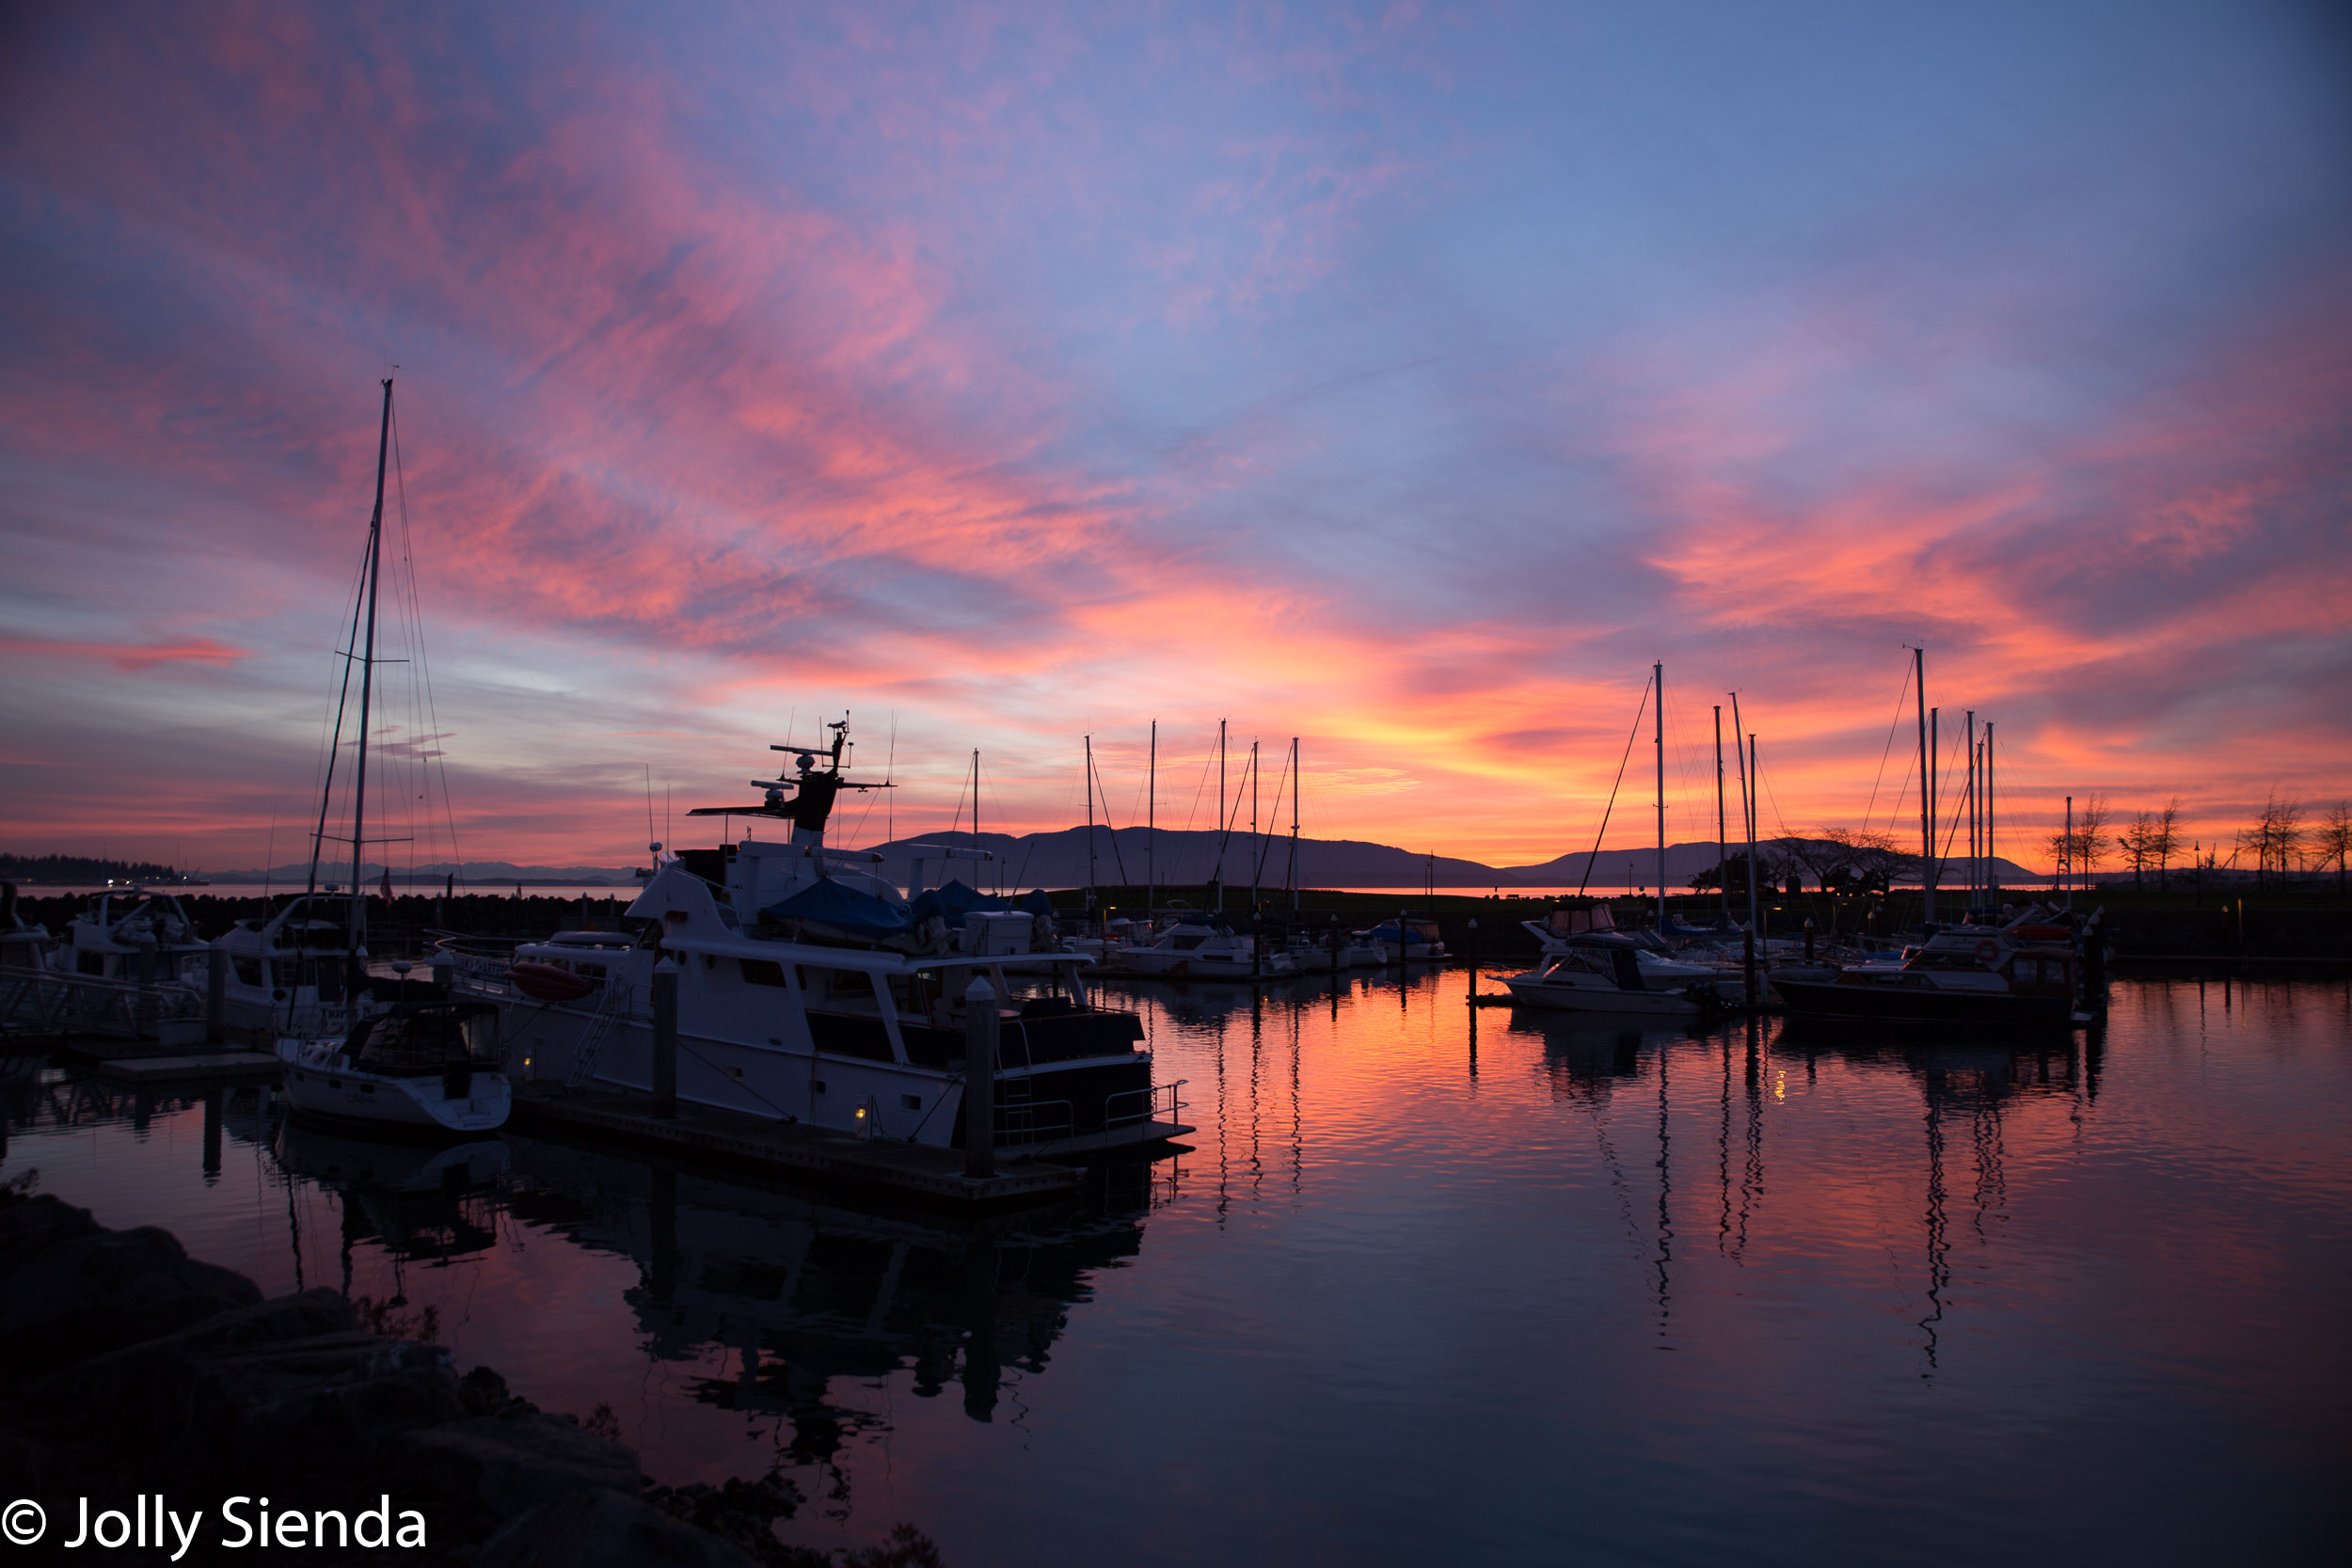 Pink sunset sets on a boat marina and Bellingham Bay